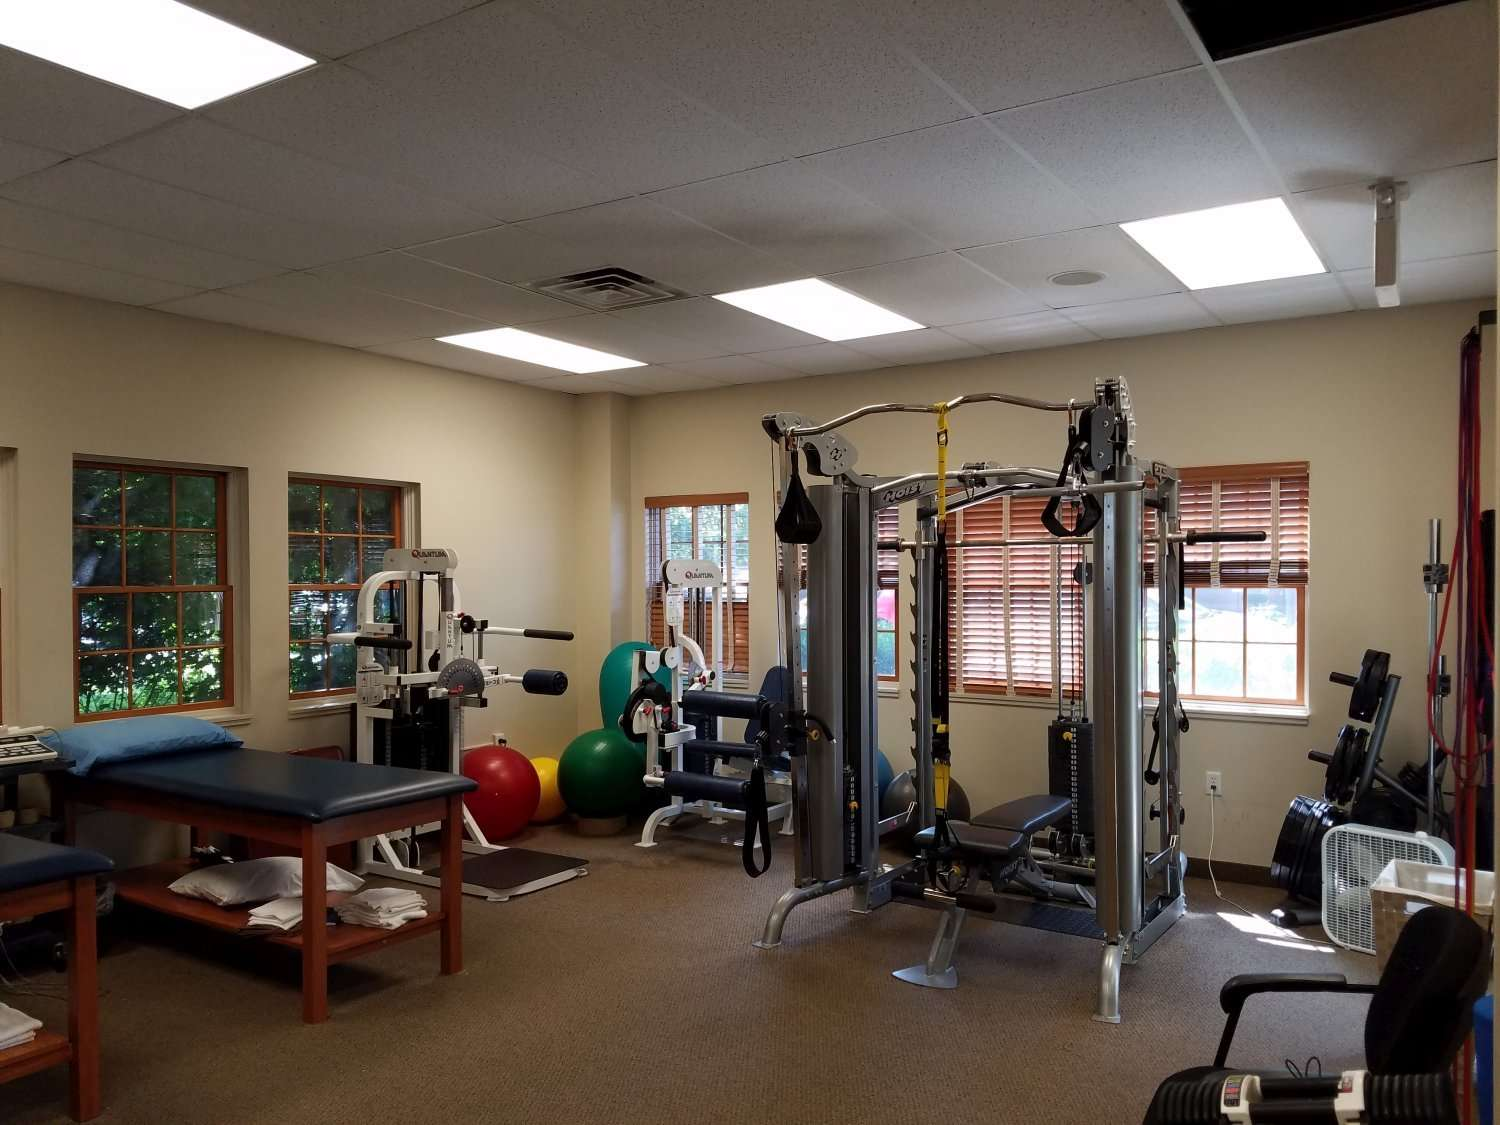 Here is a great shot showcasing some of the equipment used in our physical therapy clinic in West Orange New Jersey.